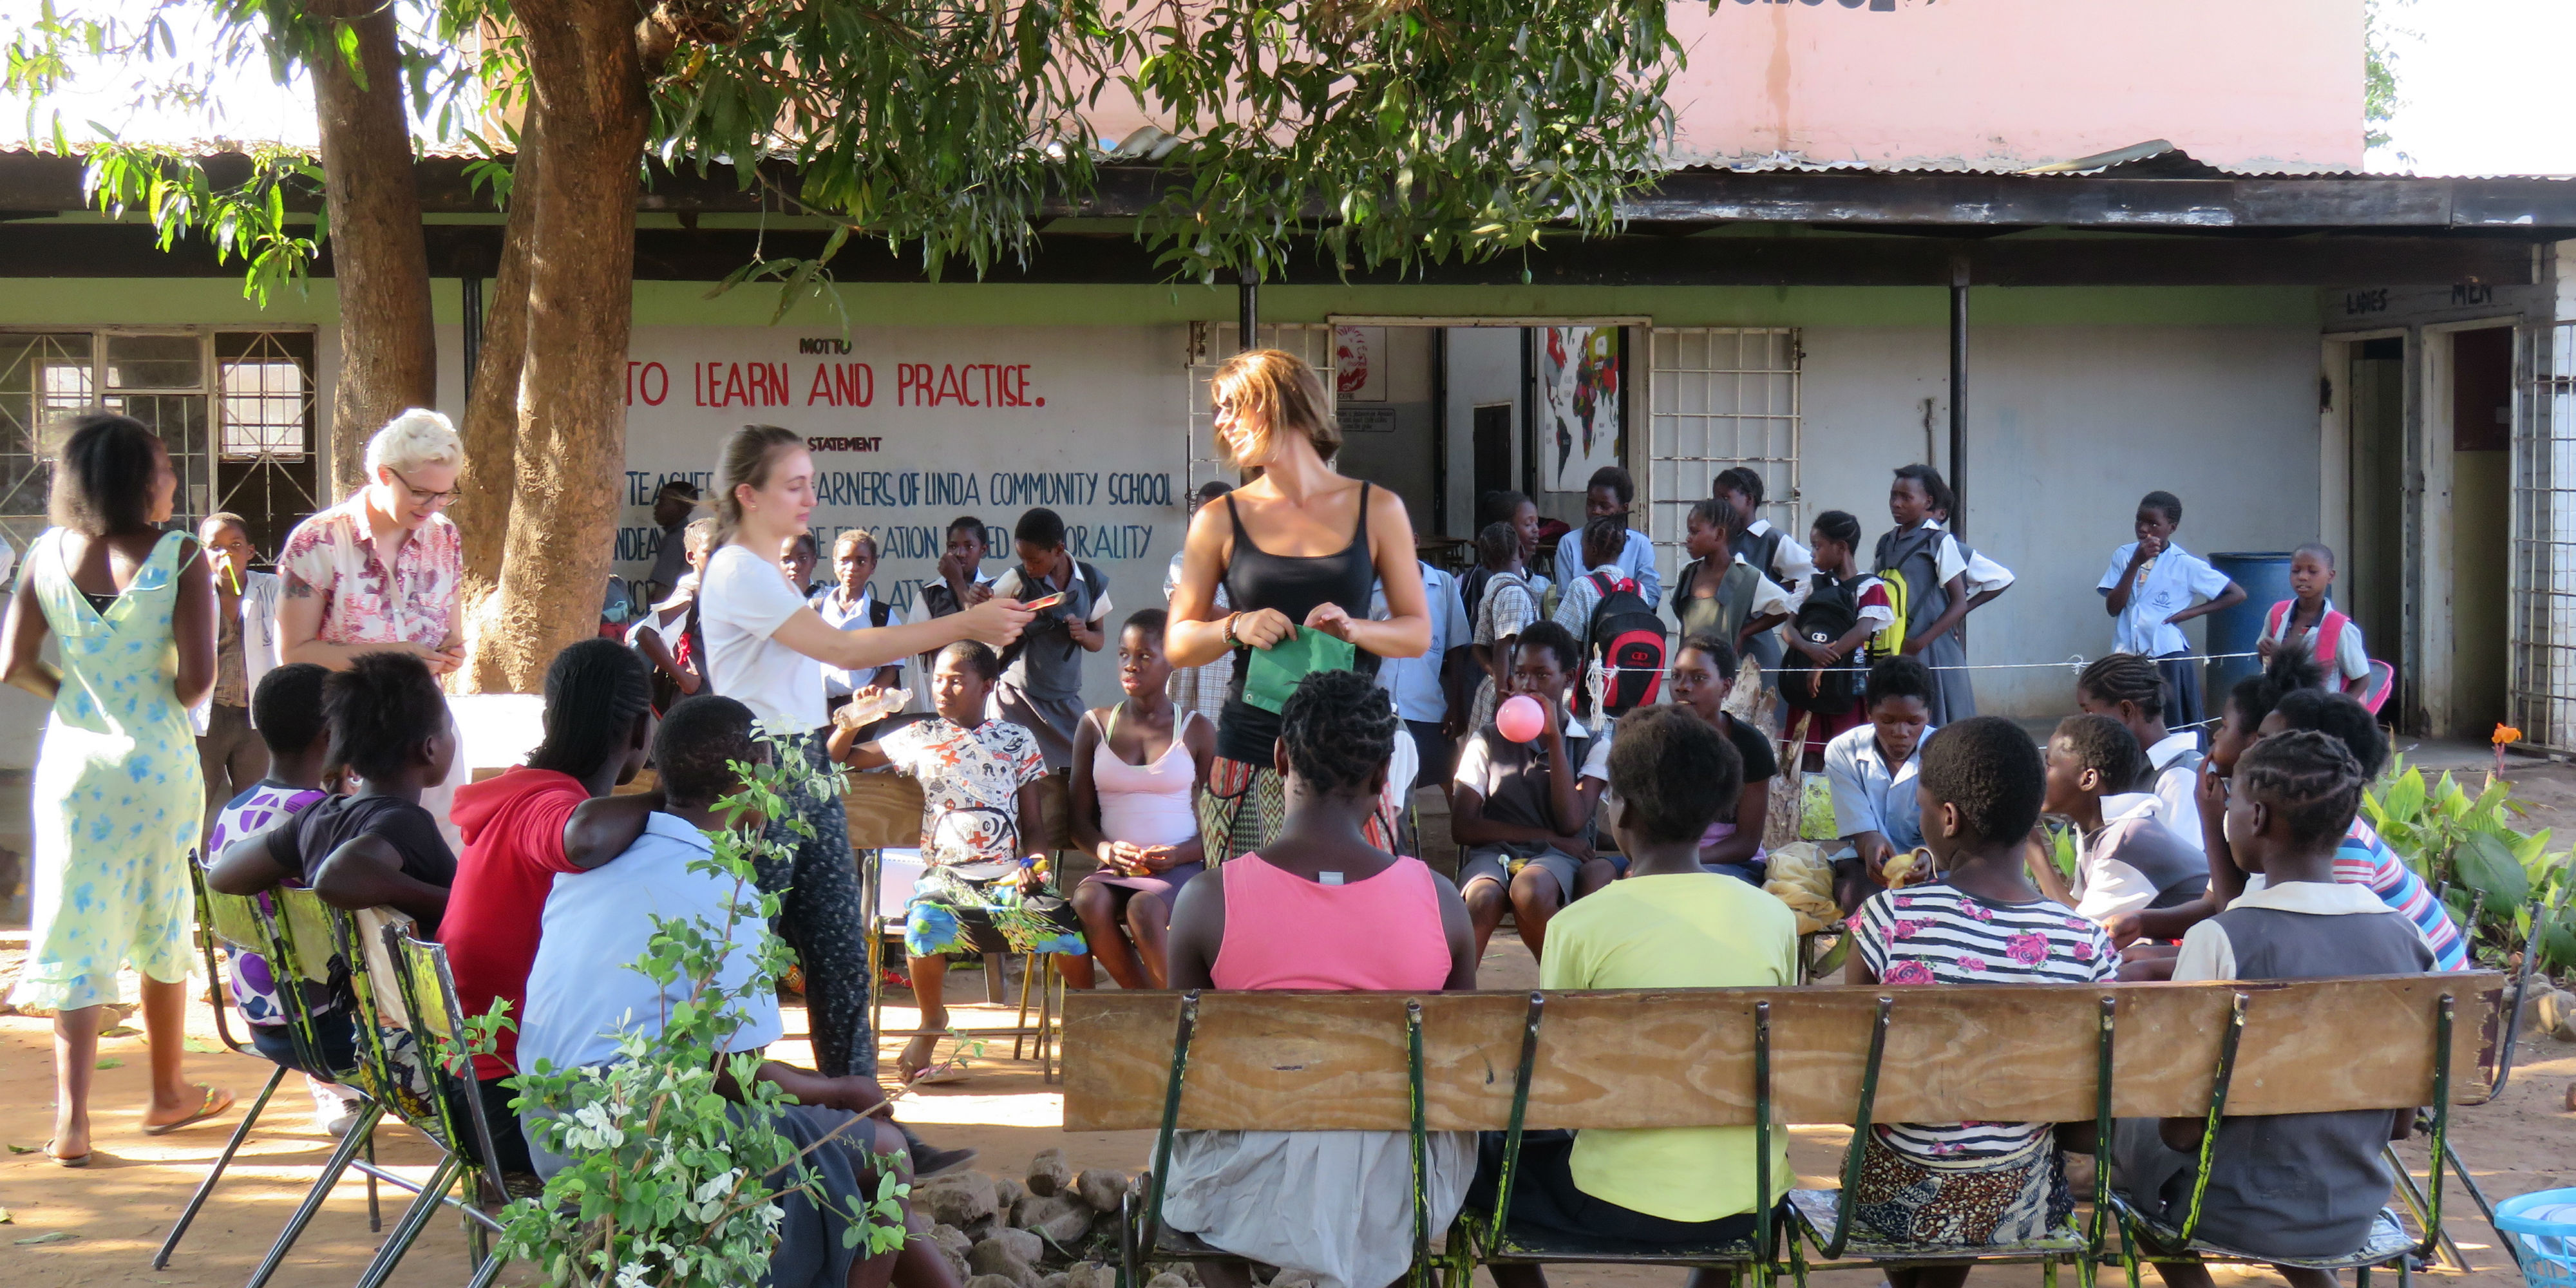 Participants take part in volunteer opportunities in Zambia.